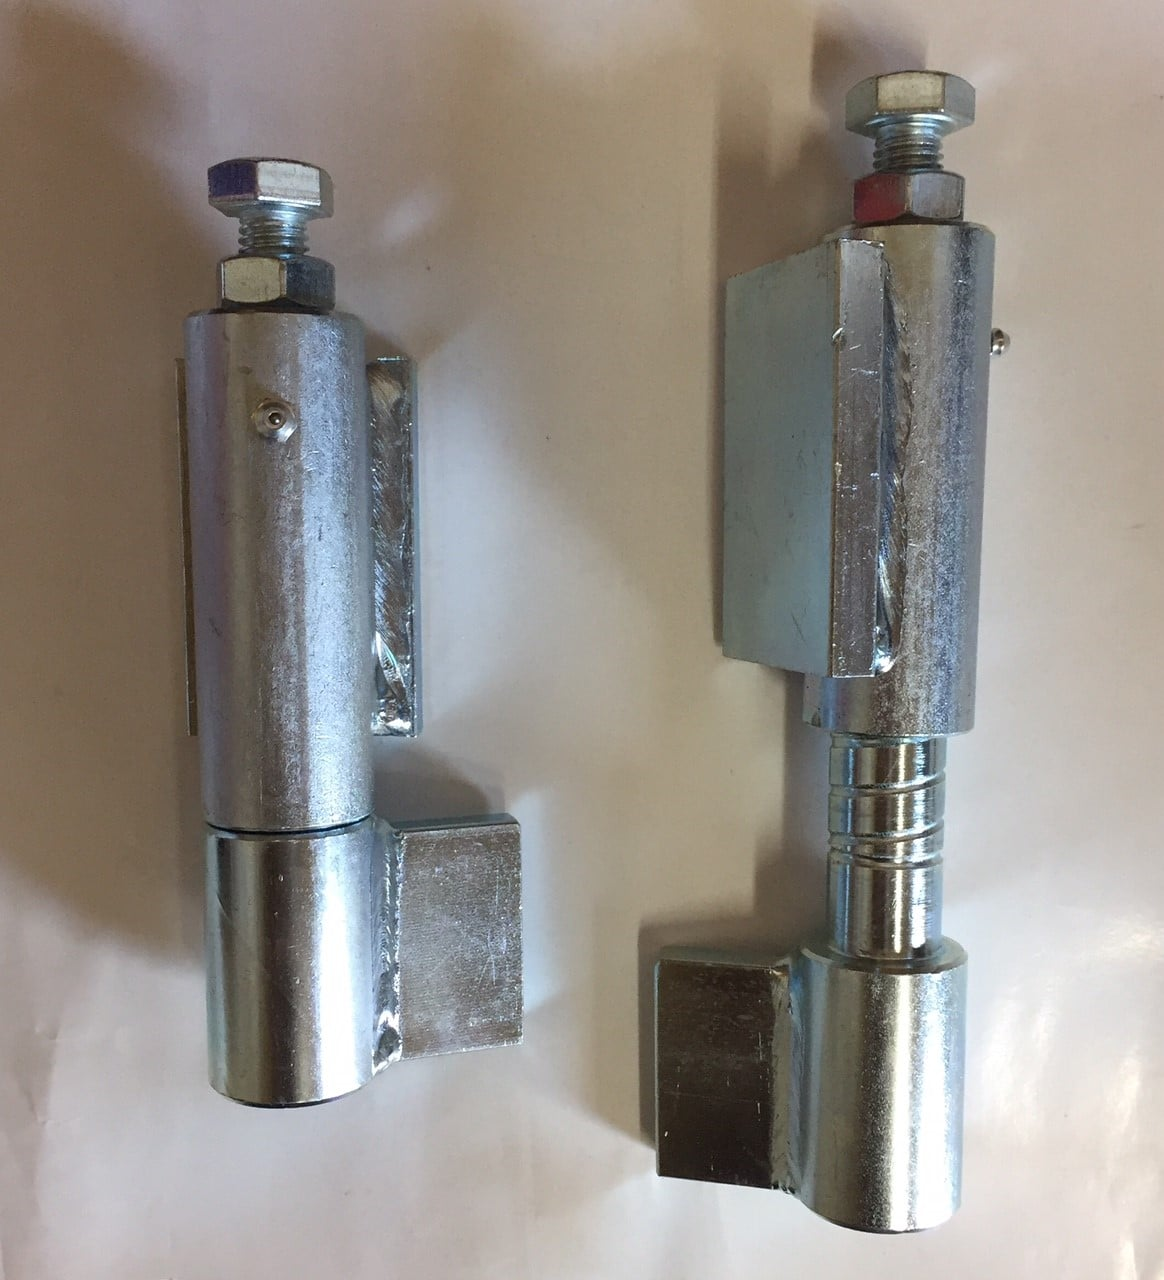 BW165S heavy duty steel weld on ball bearing hinges